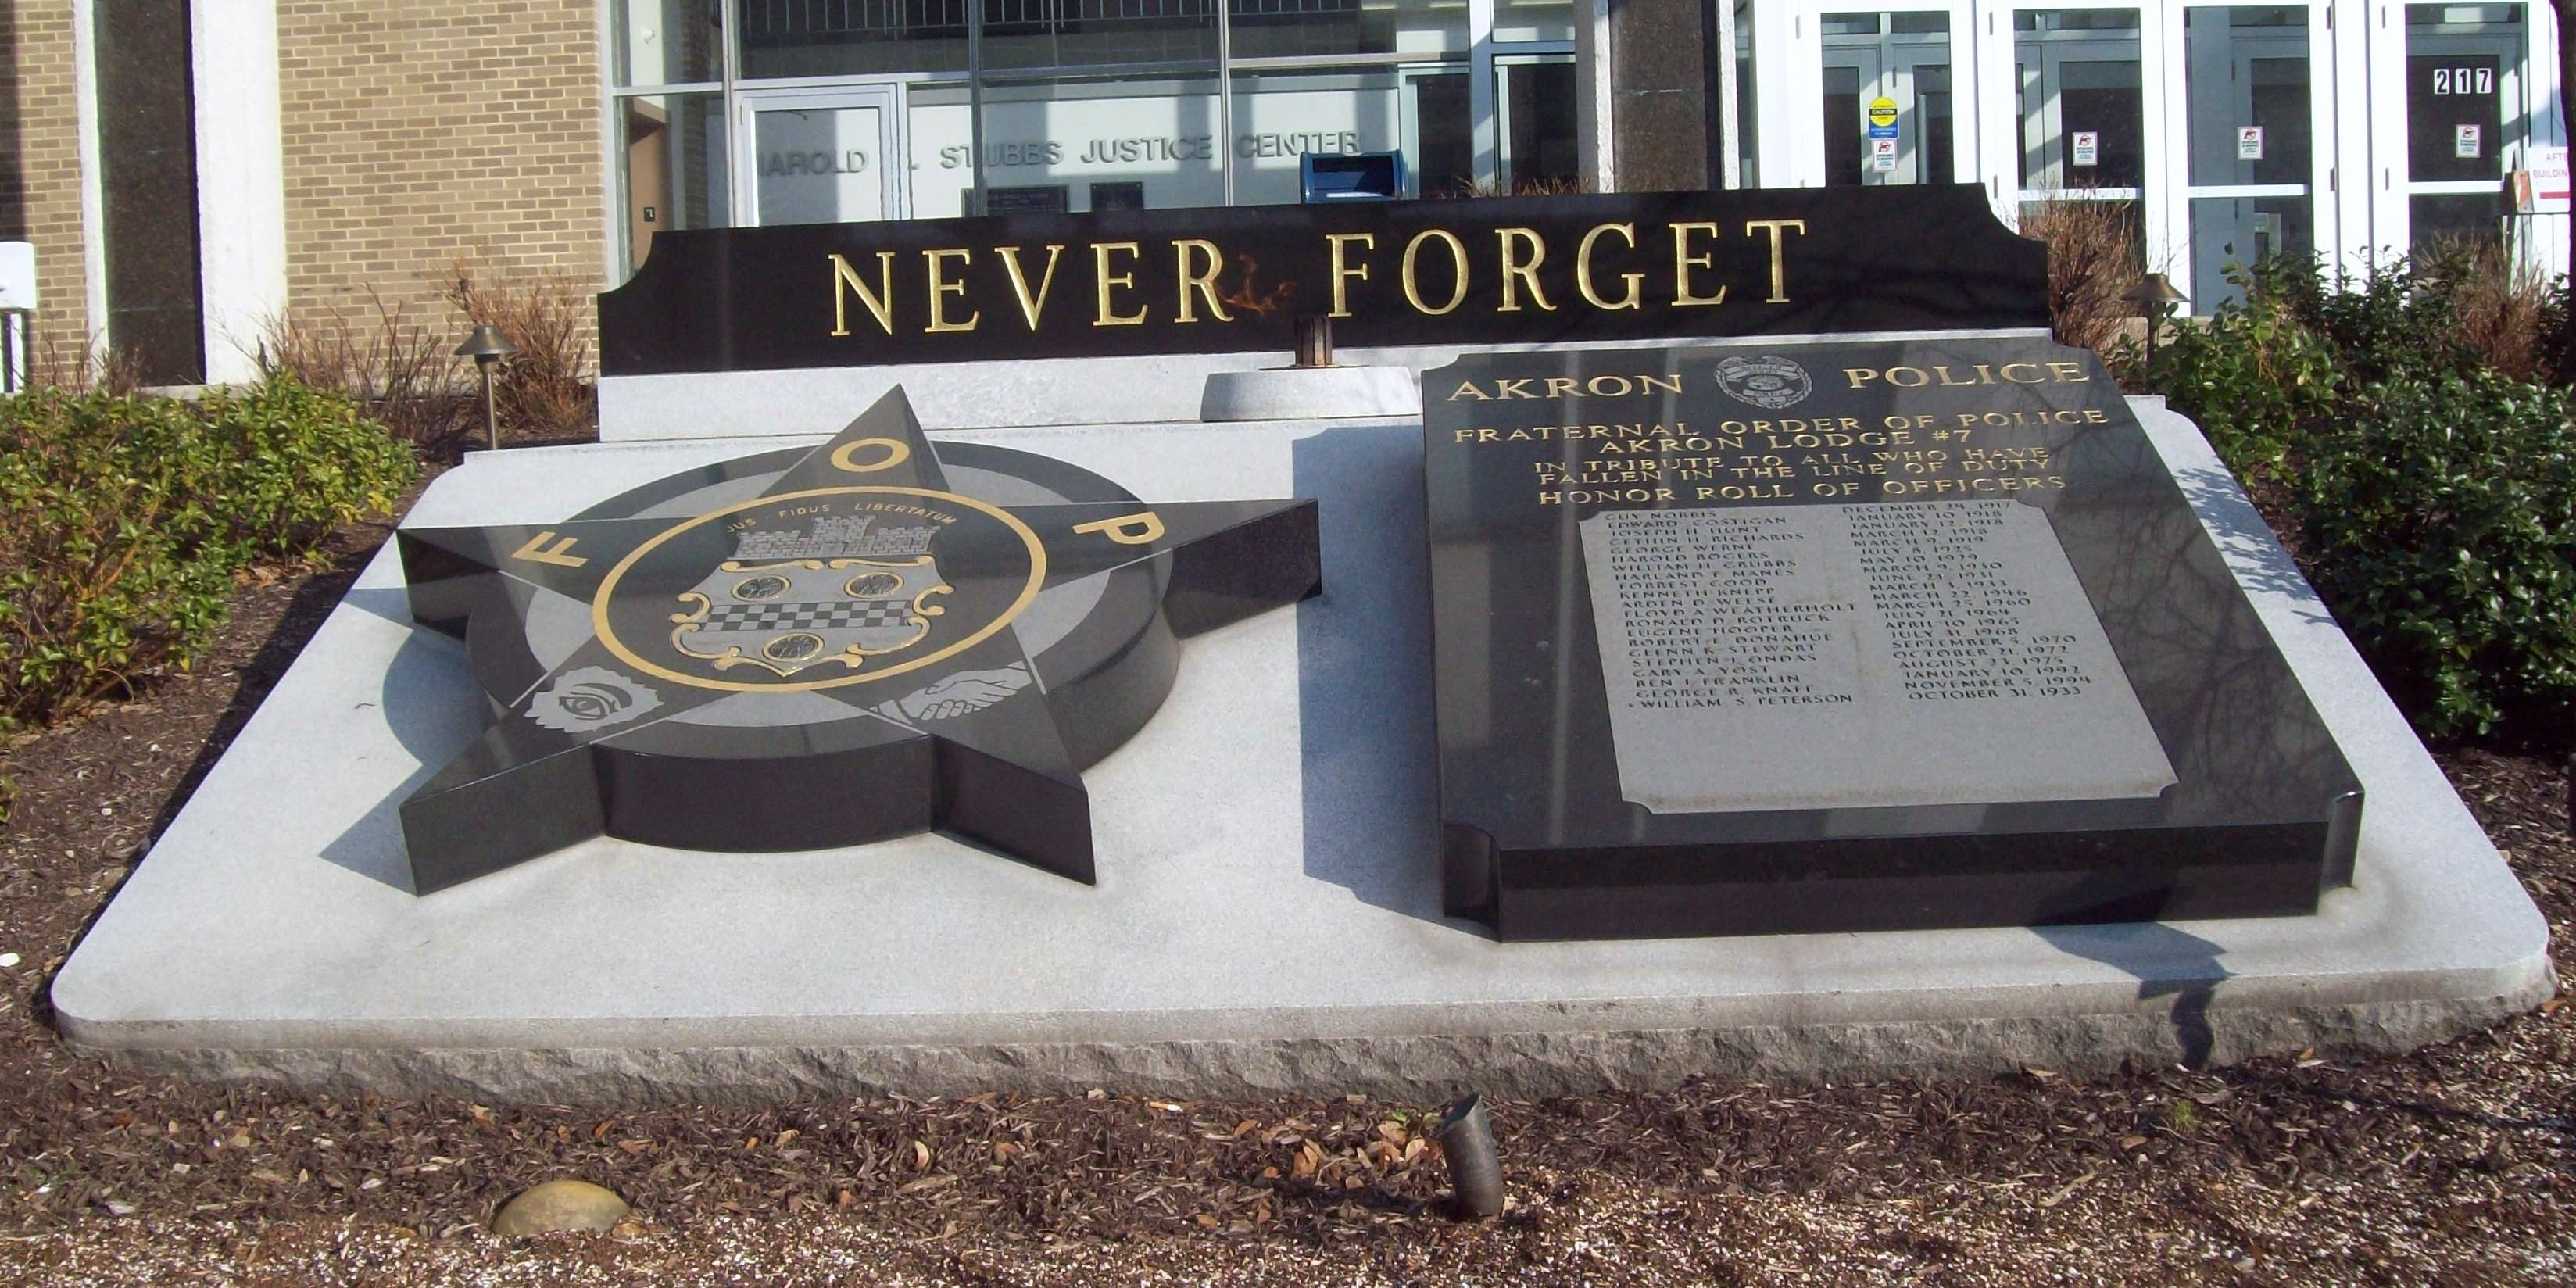 https://upload.wikimedia.org/wikipedia/commons/e/e4/Akron_Police_Memorial.jpg